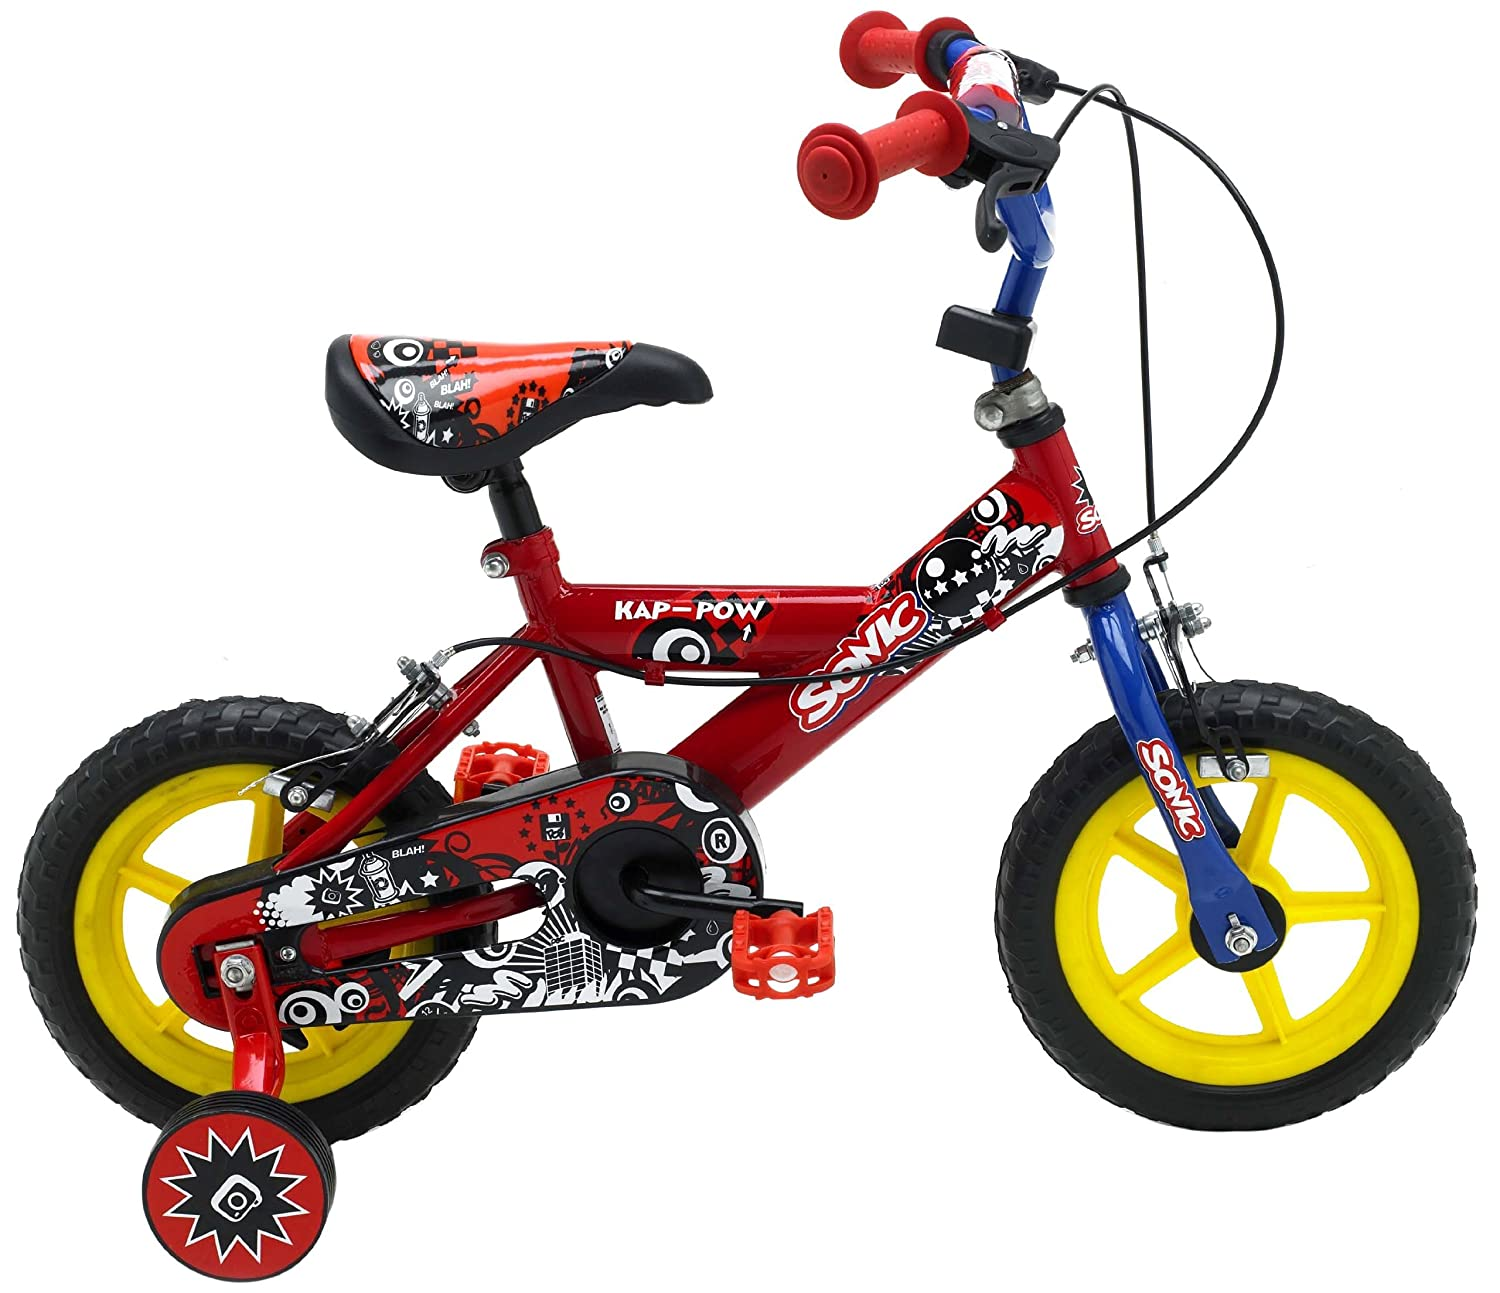 Bikes Kids Sonic Kap Pow Boys Bike